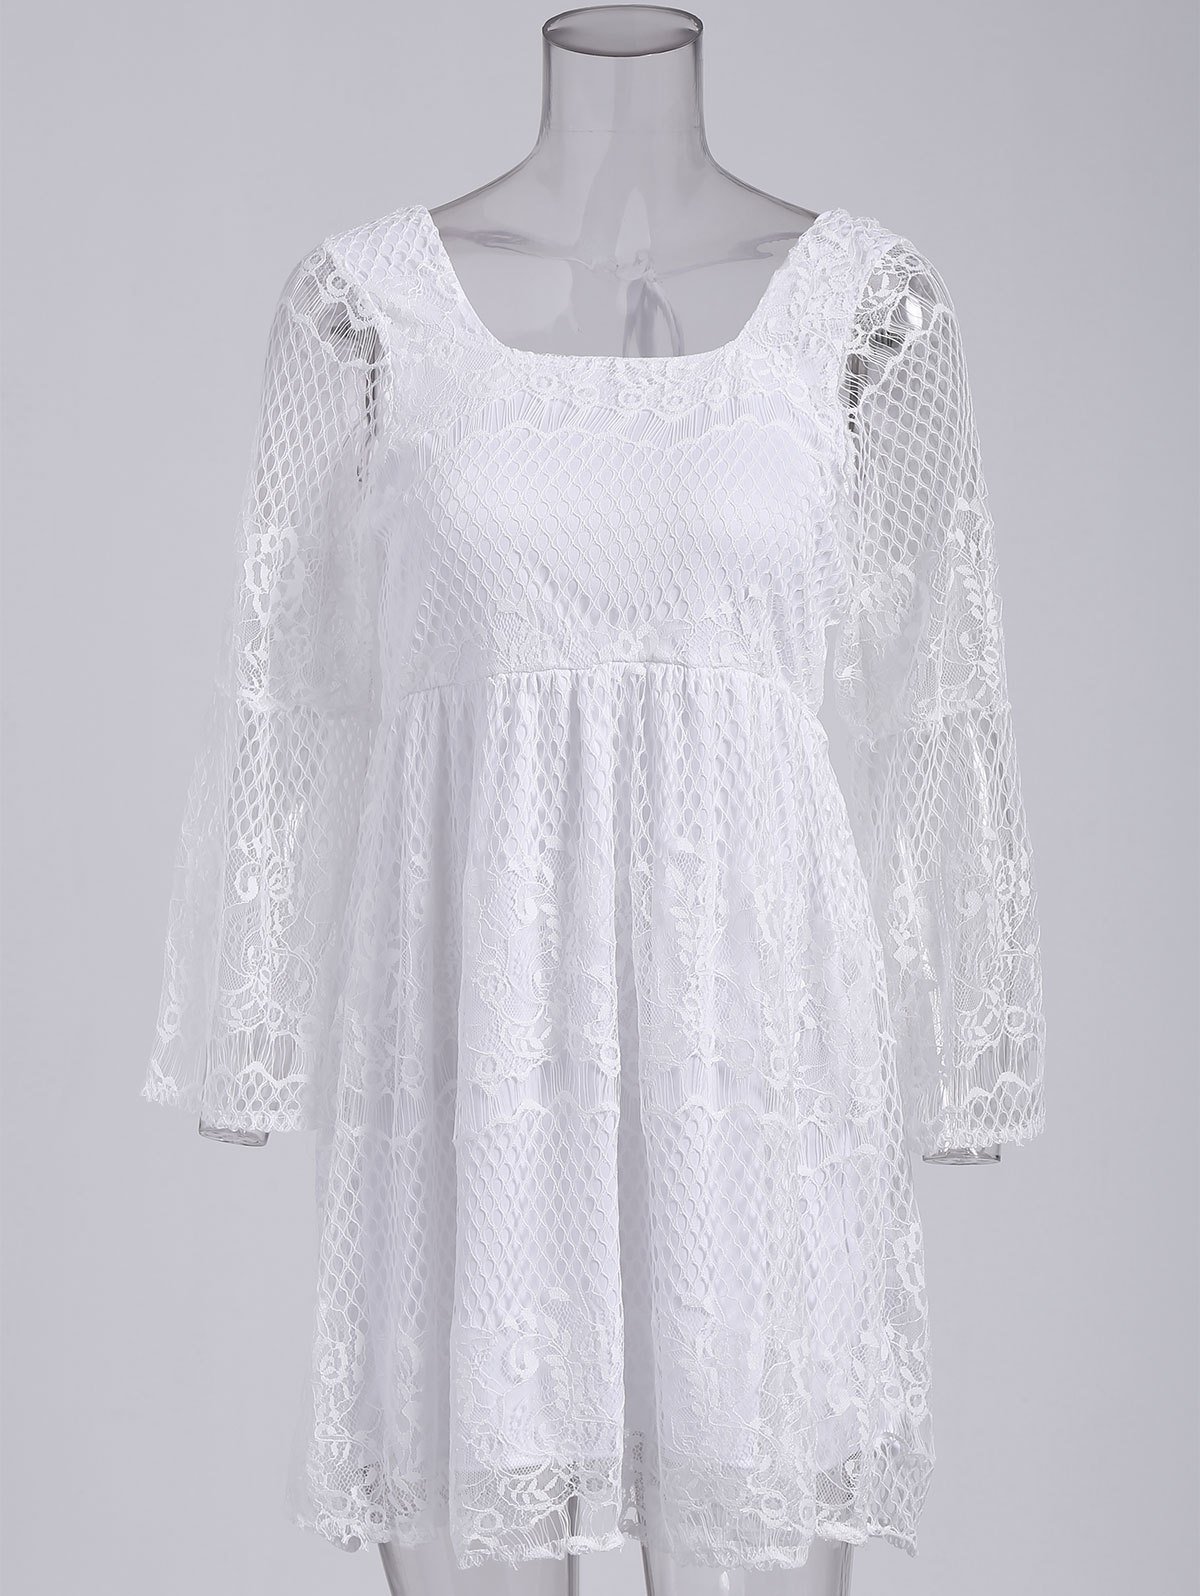 Affordable Ladylike Square Neck Flare Sleeve Hollow Out White High Waist Dress For Women